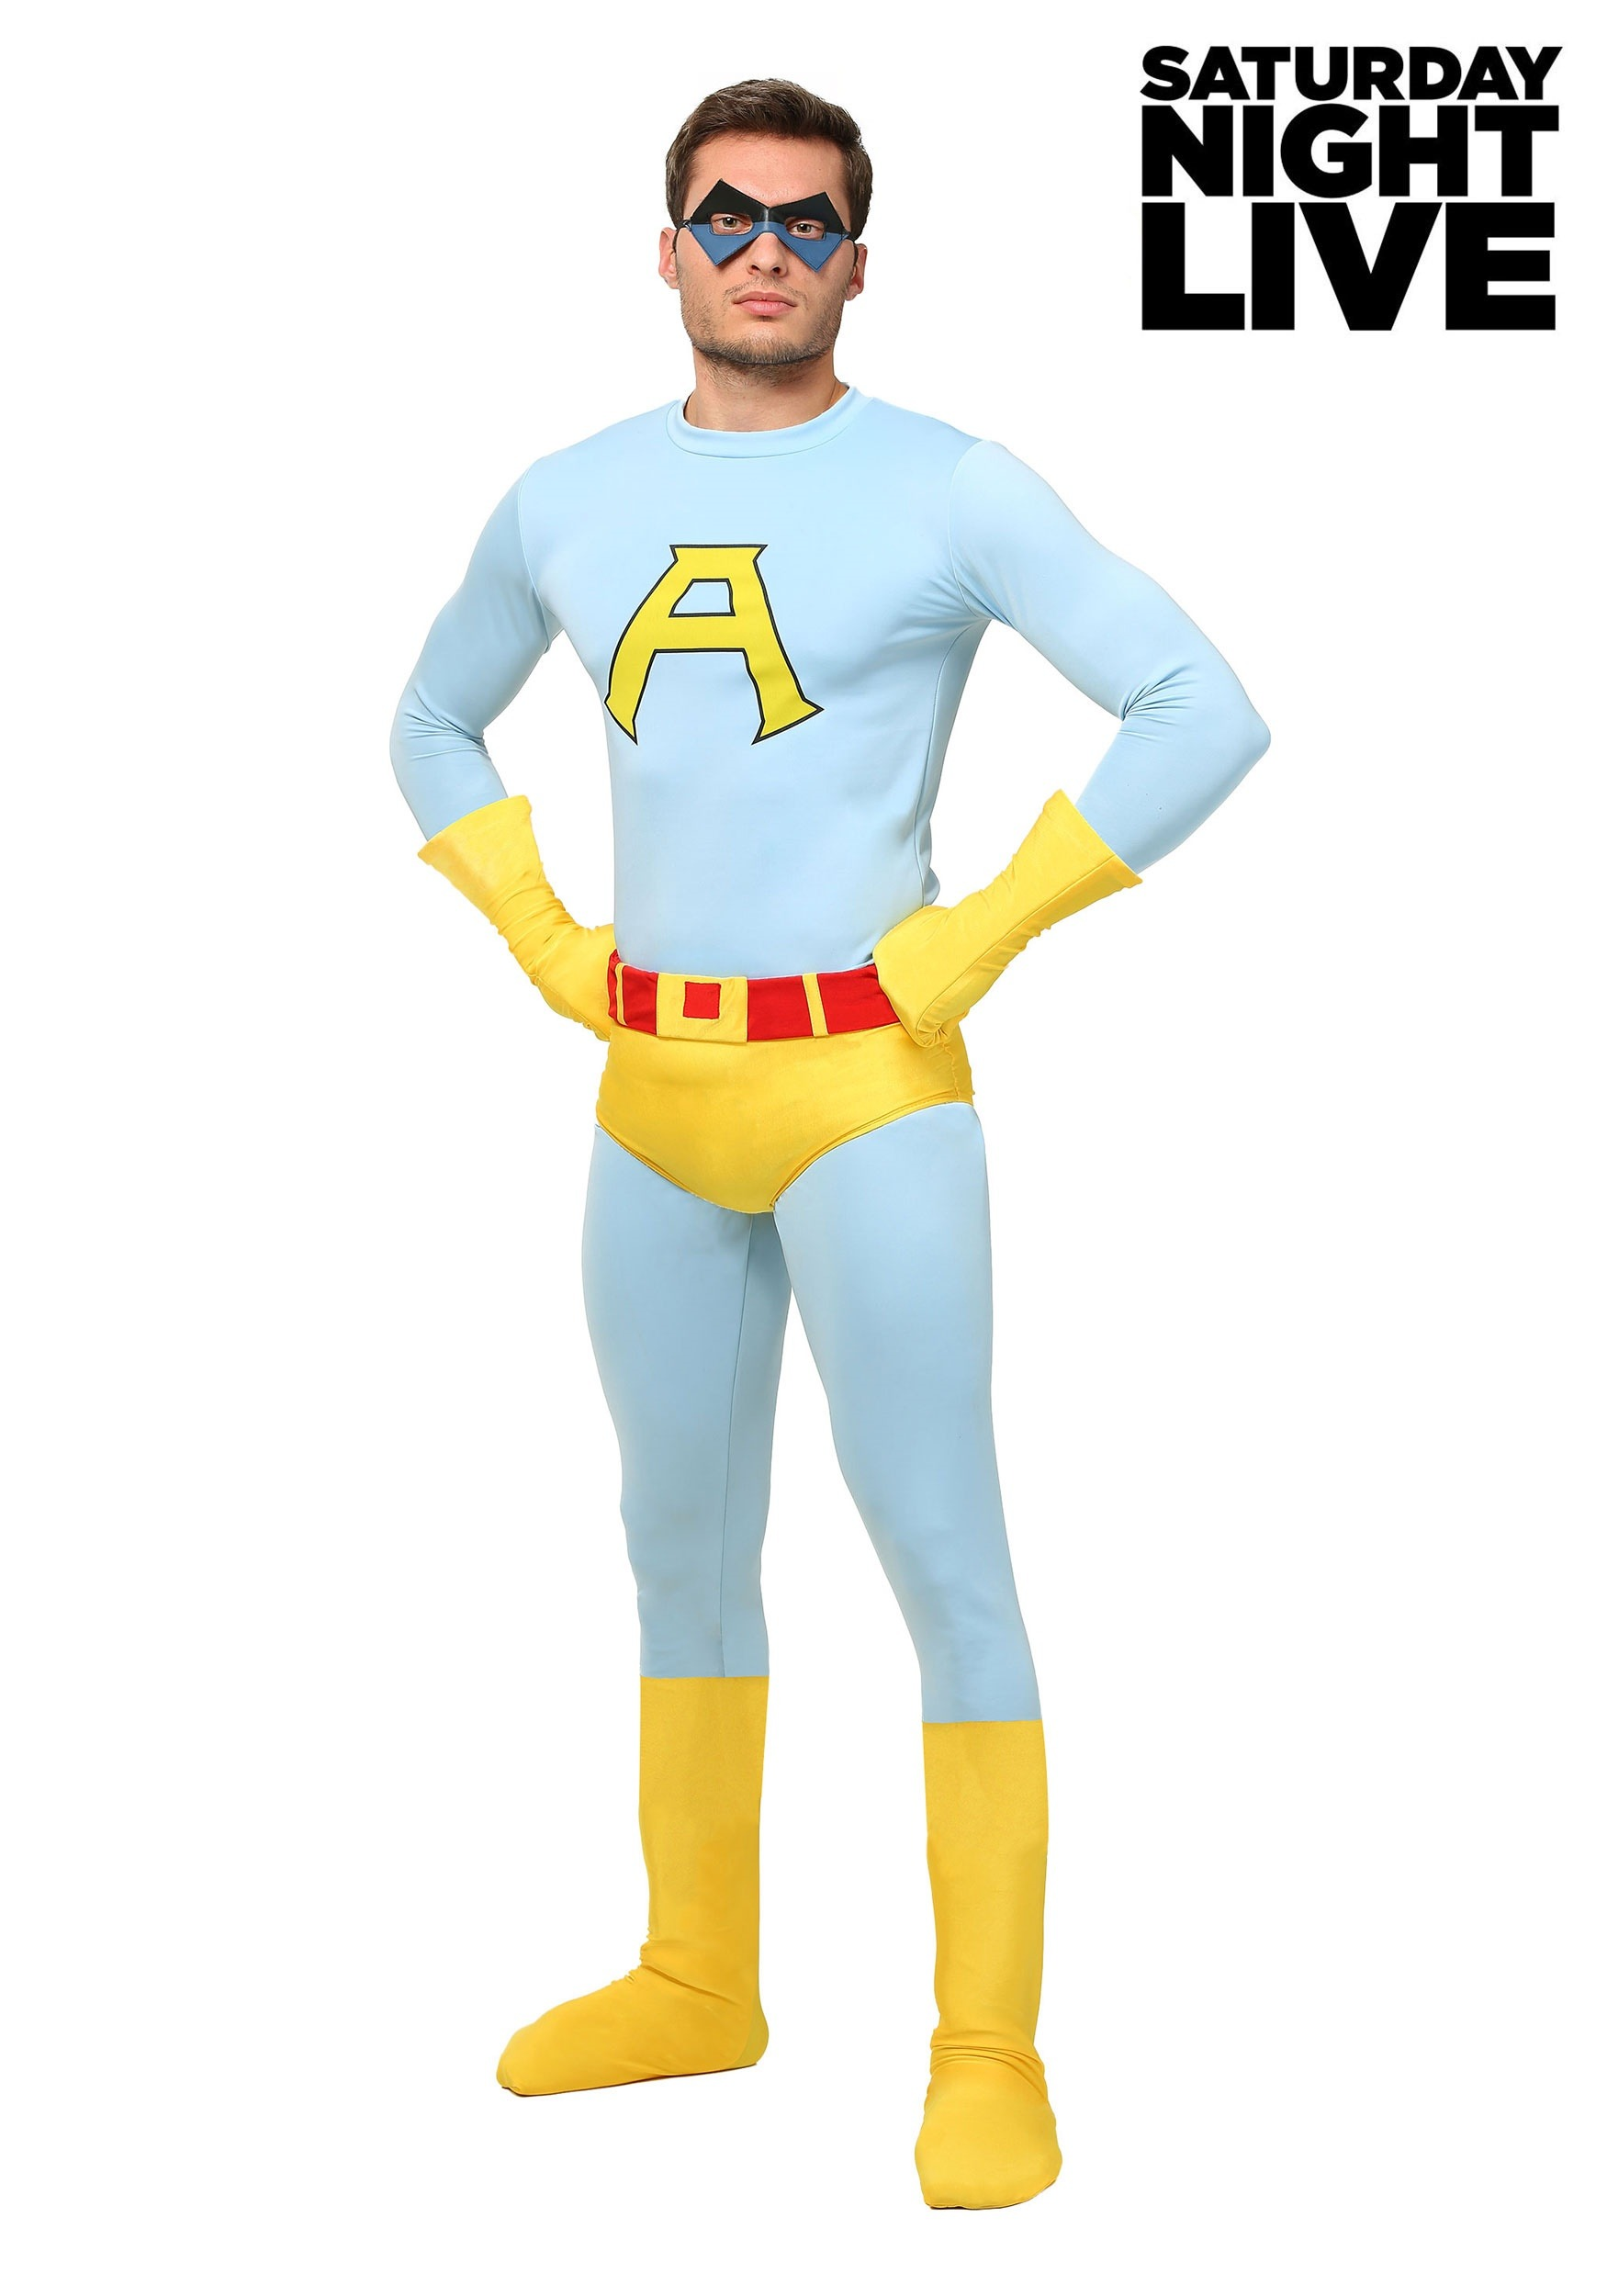 Adult Deluxe Ace Costume